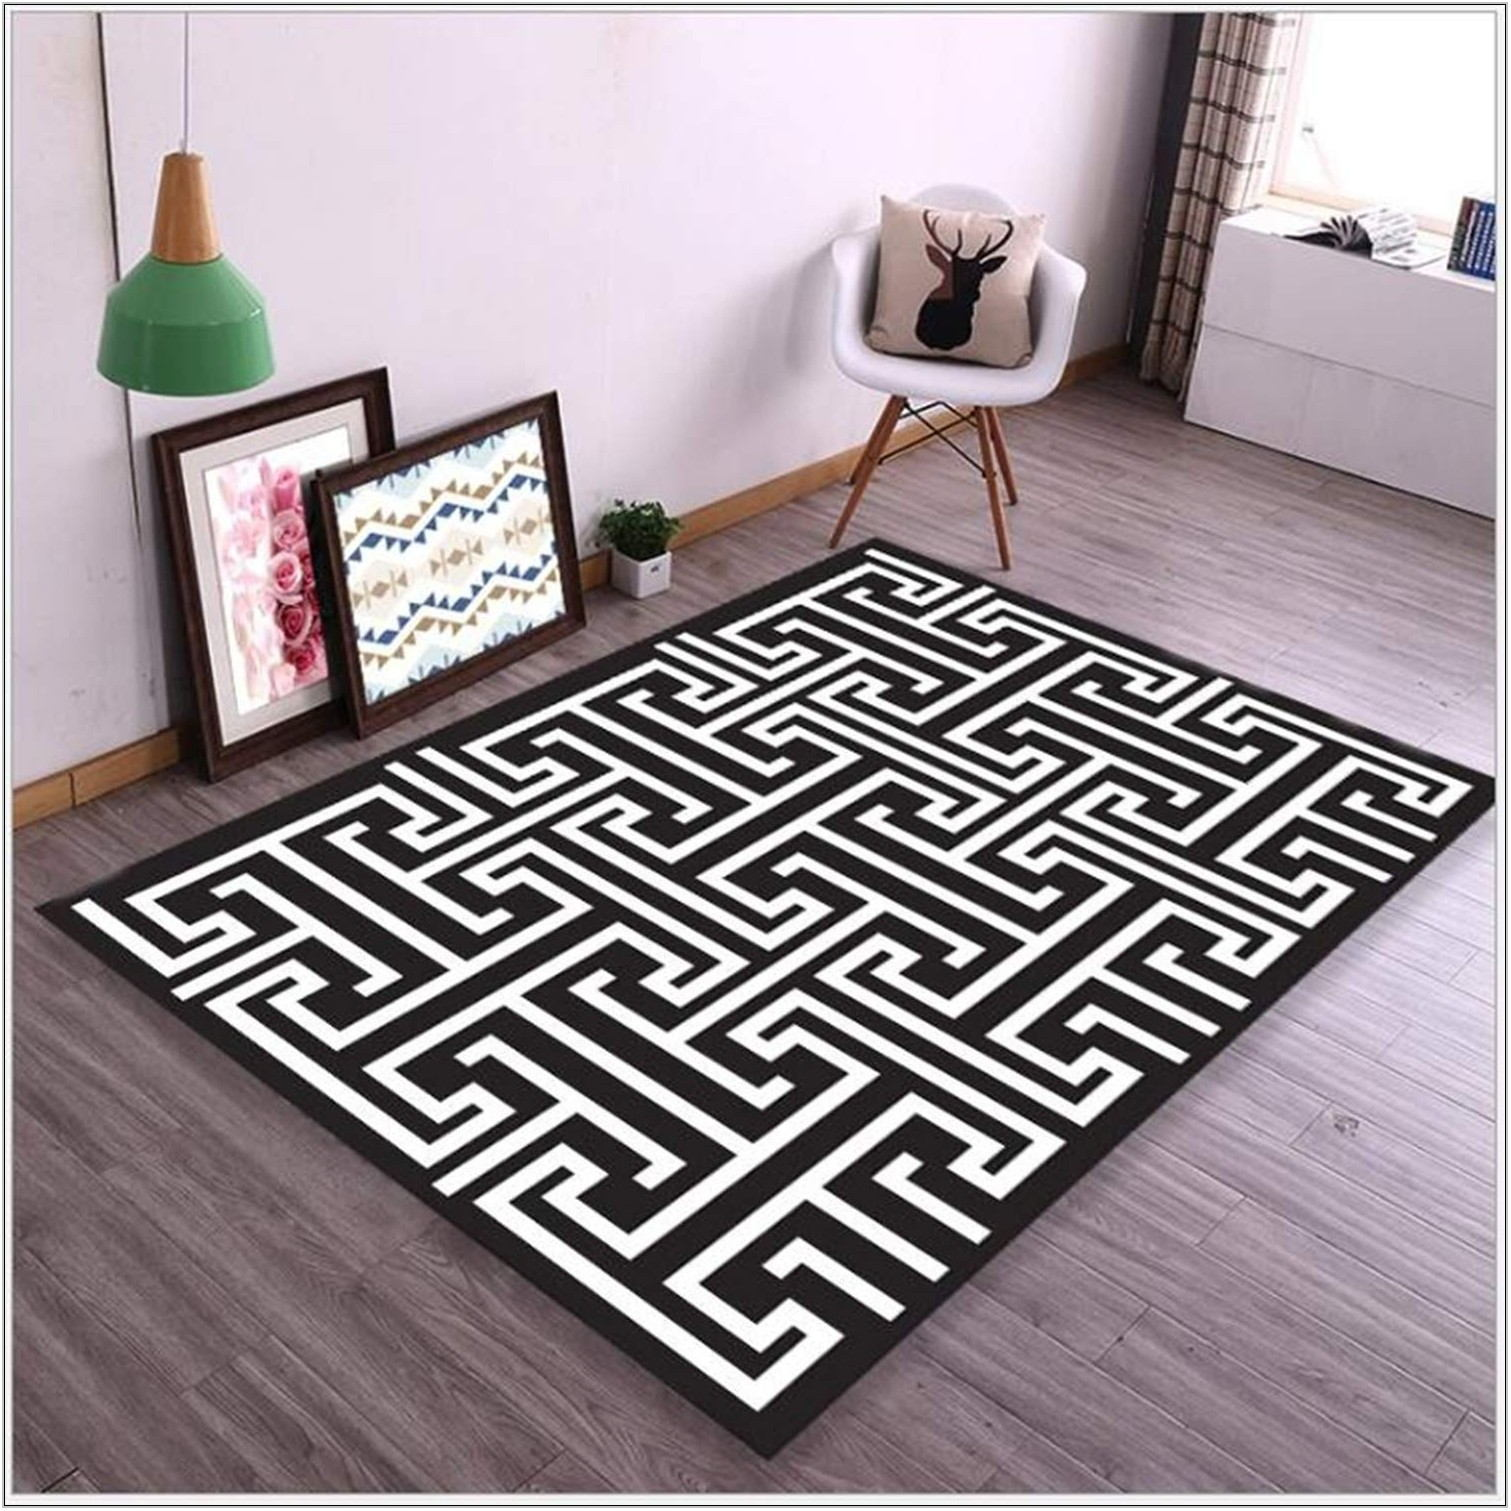 Black And White Carpets For Living Room